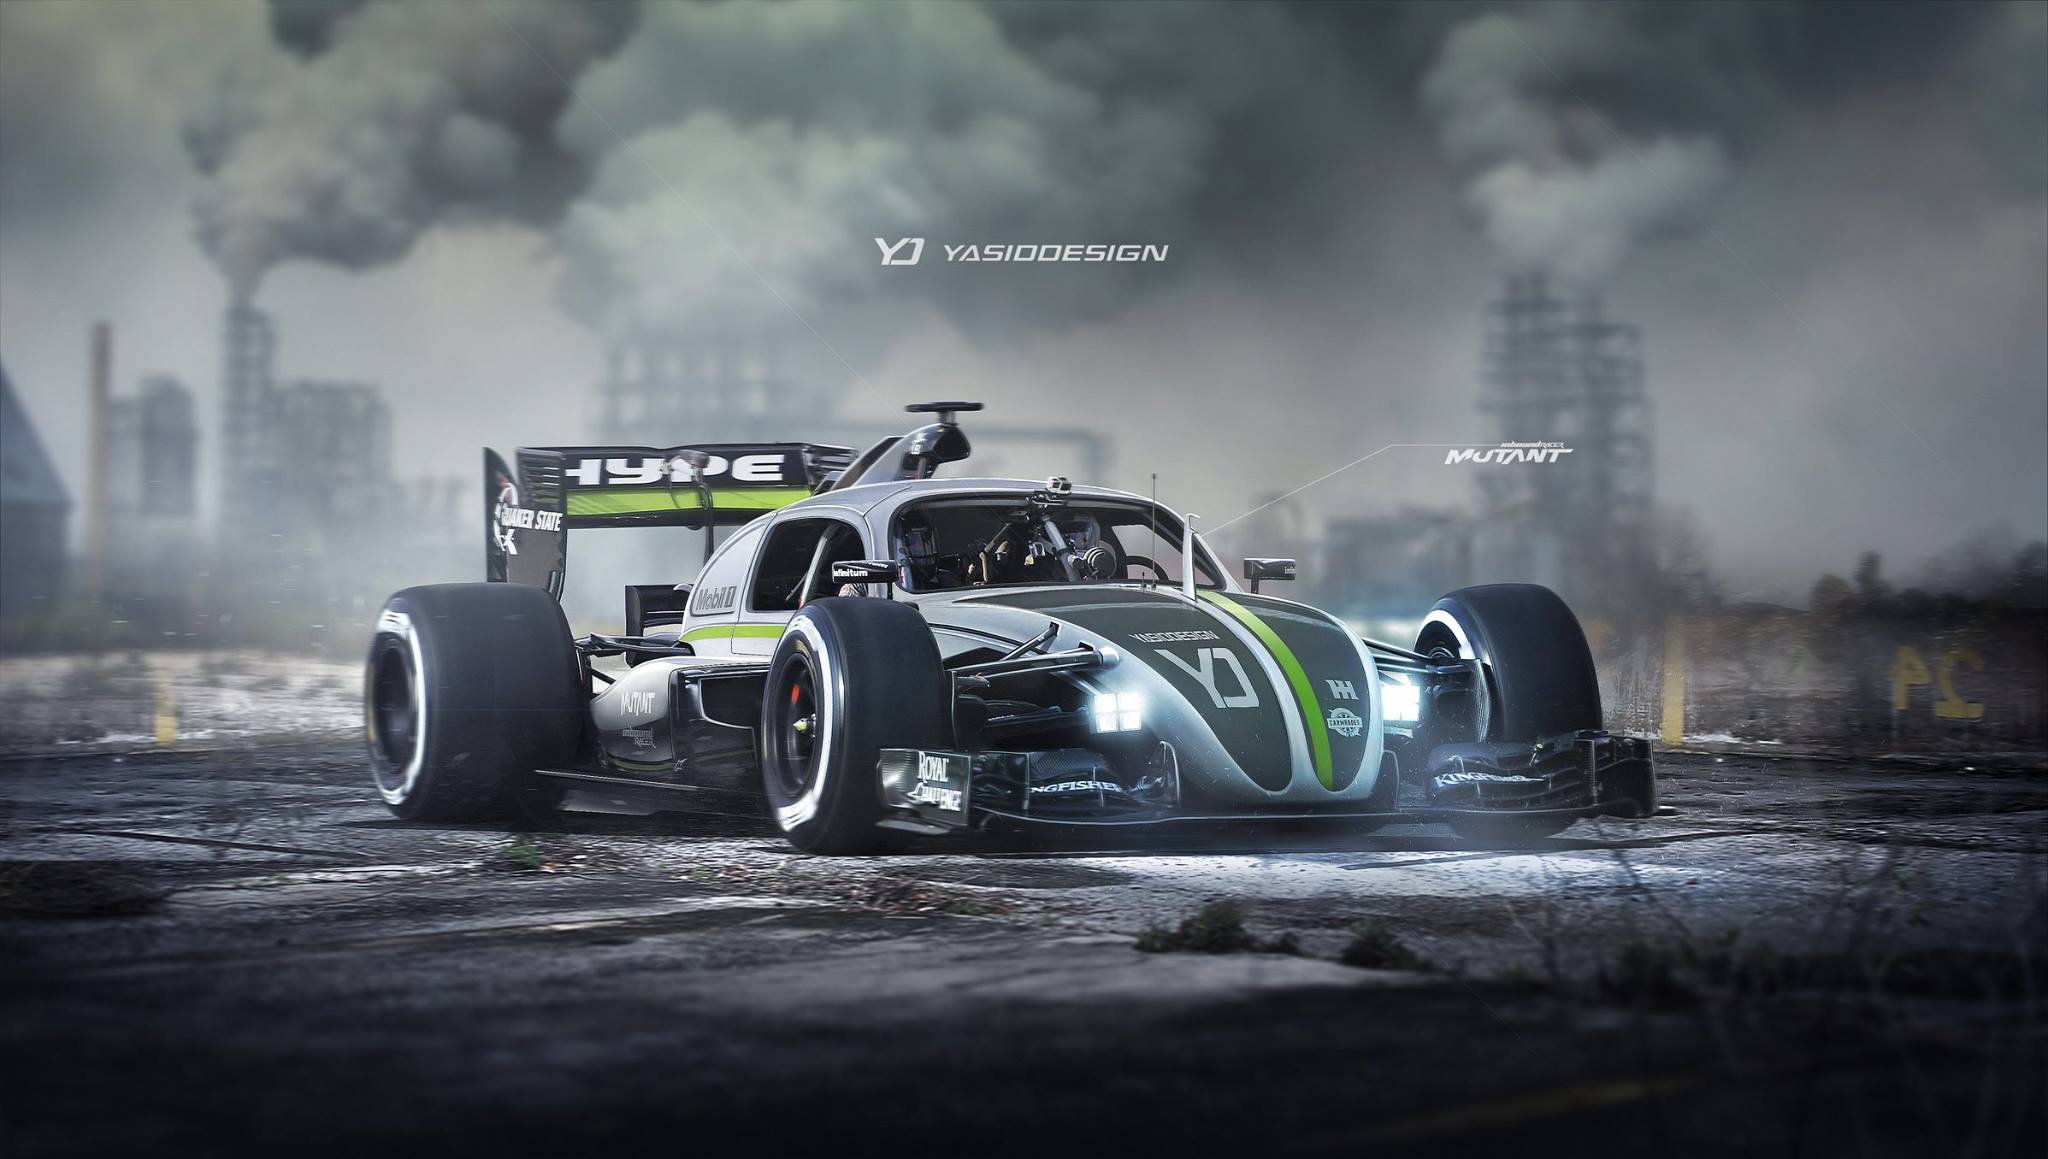 Formula One Vw Beetle Mashup Is Not As Fictional As You D